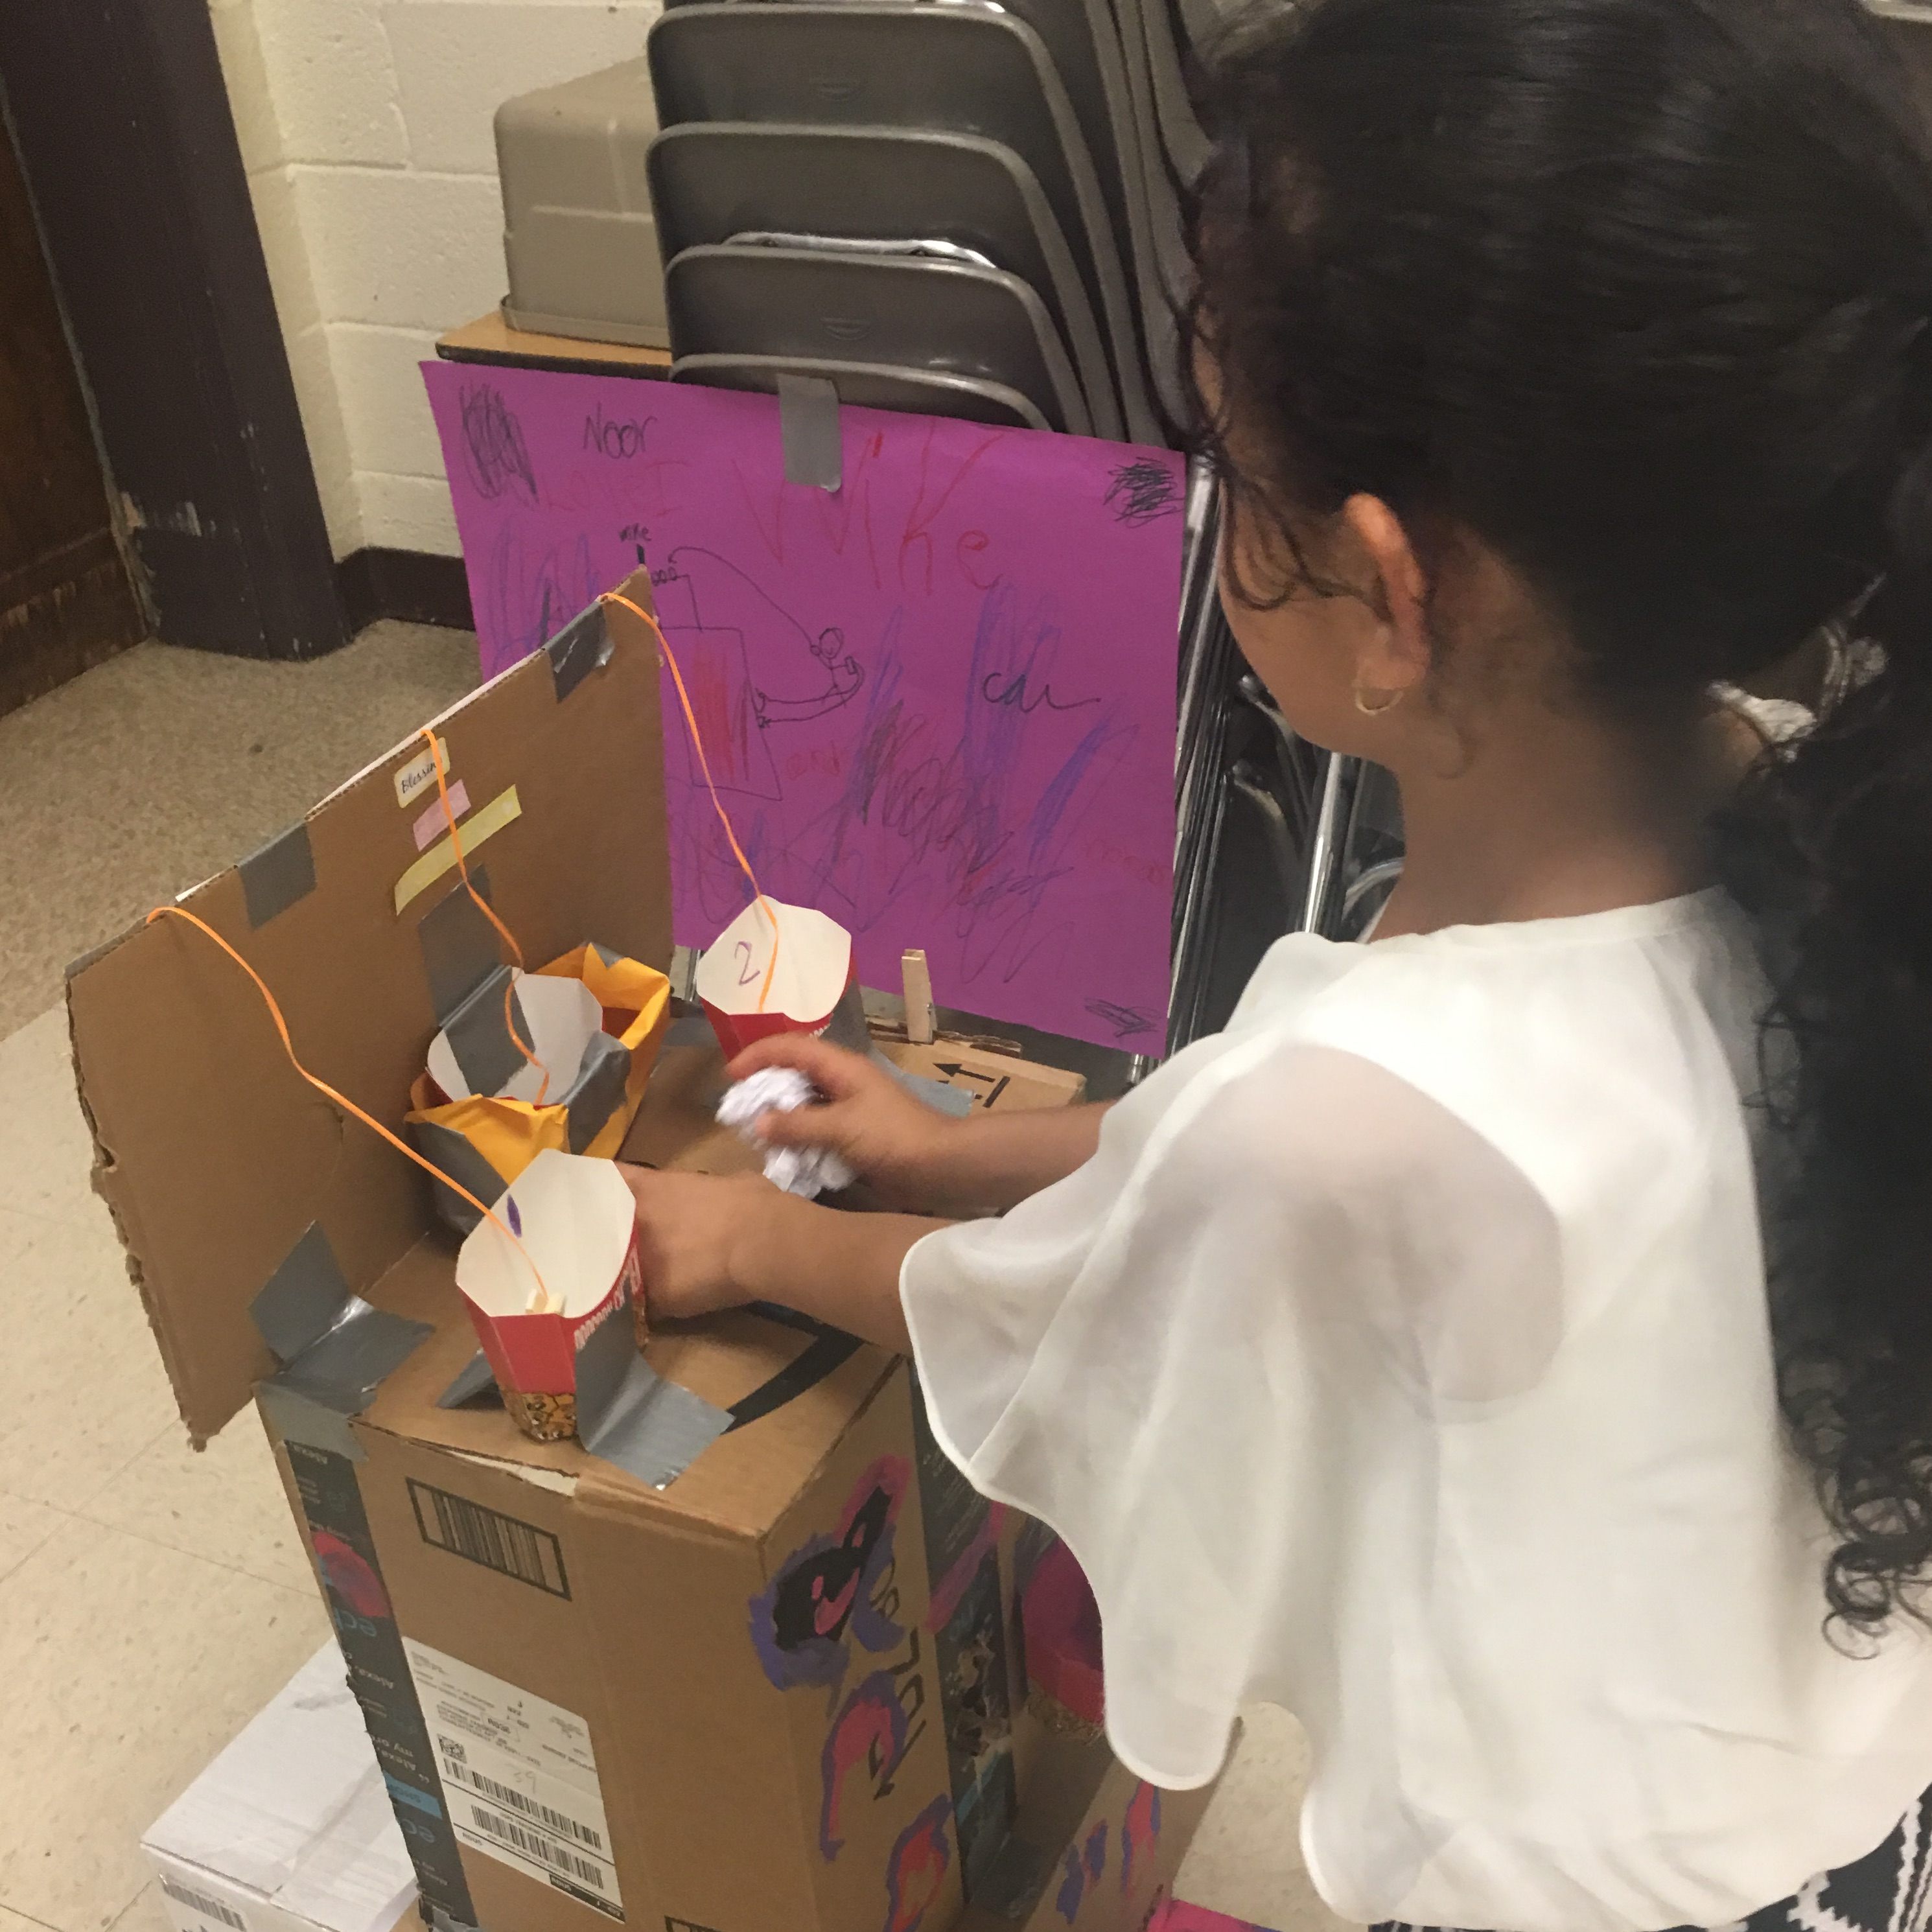 A young girl demonstrates her cardboard project. Image courtesy of Pam Moran.